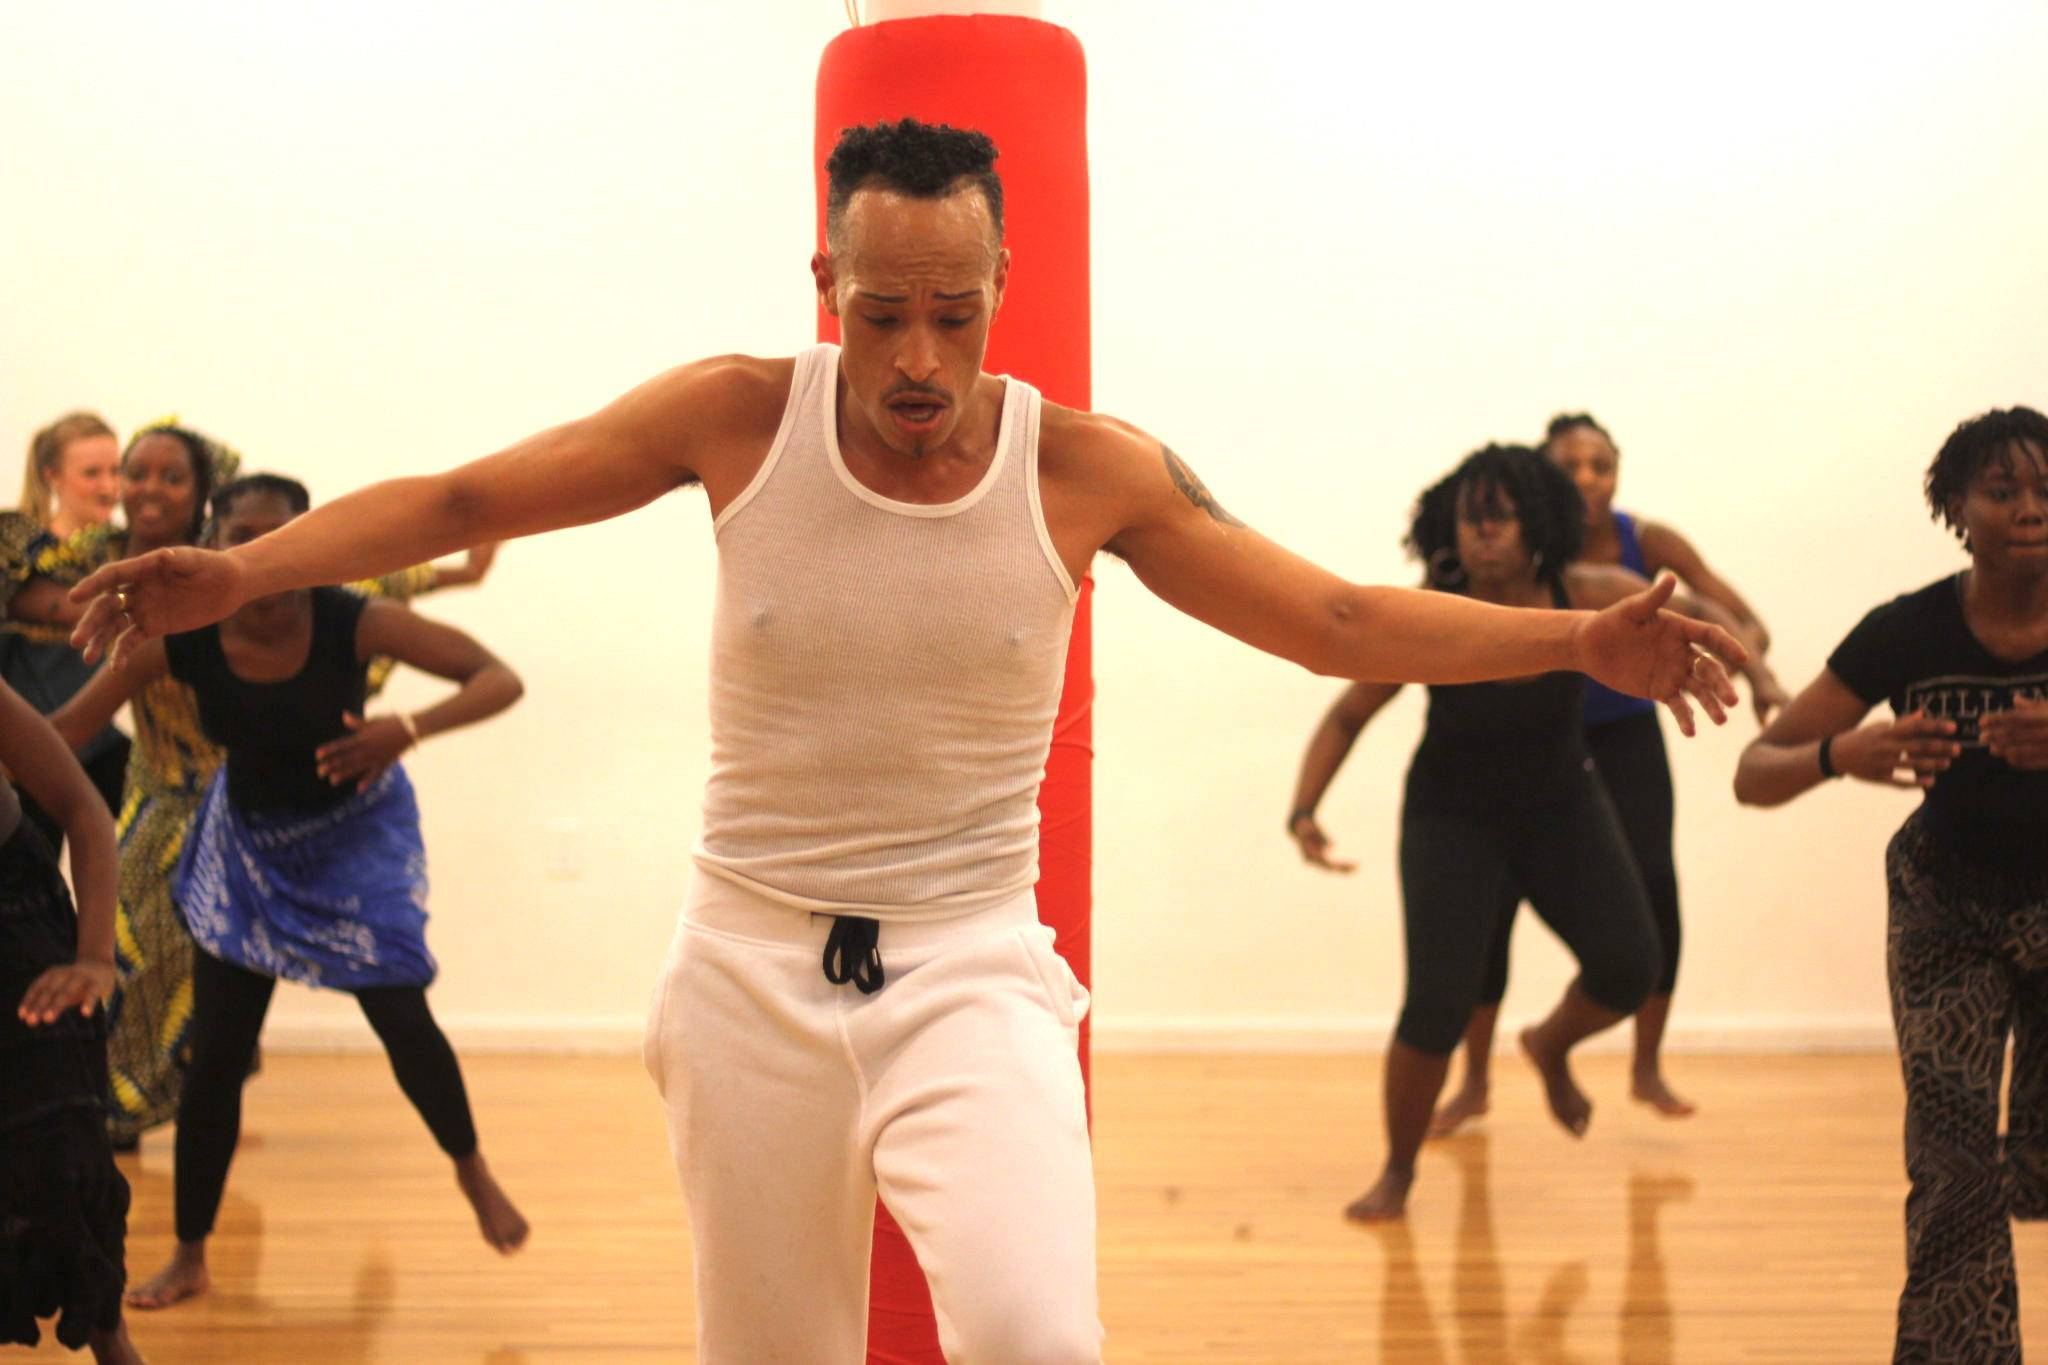 In observation of World Pride, Cumbe Dance will be hosting an afternoon of love, happiness and Afro-Cuban dance led by the vibrant Tony Domenech.